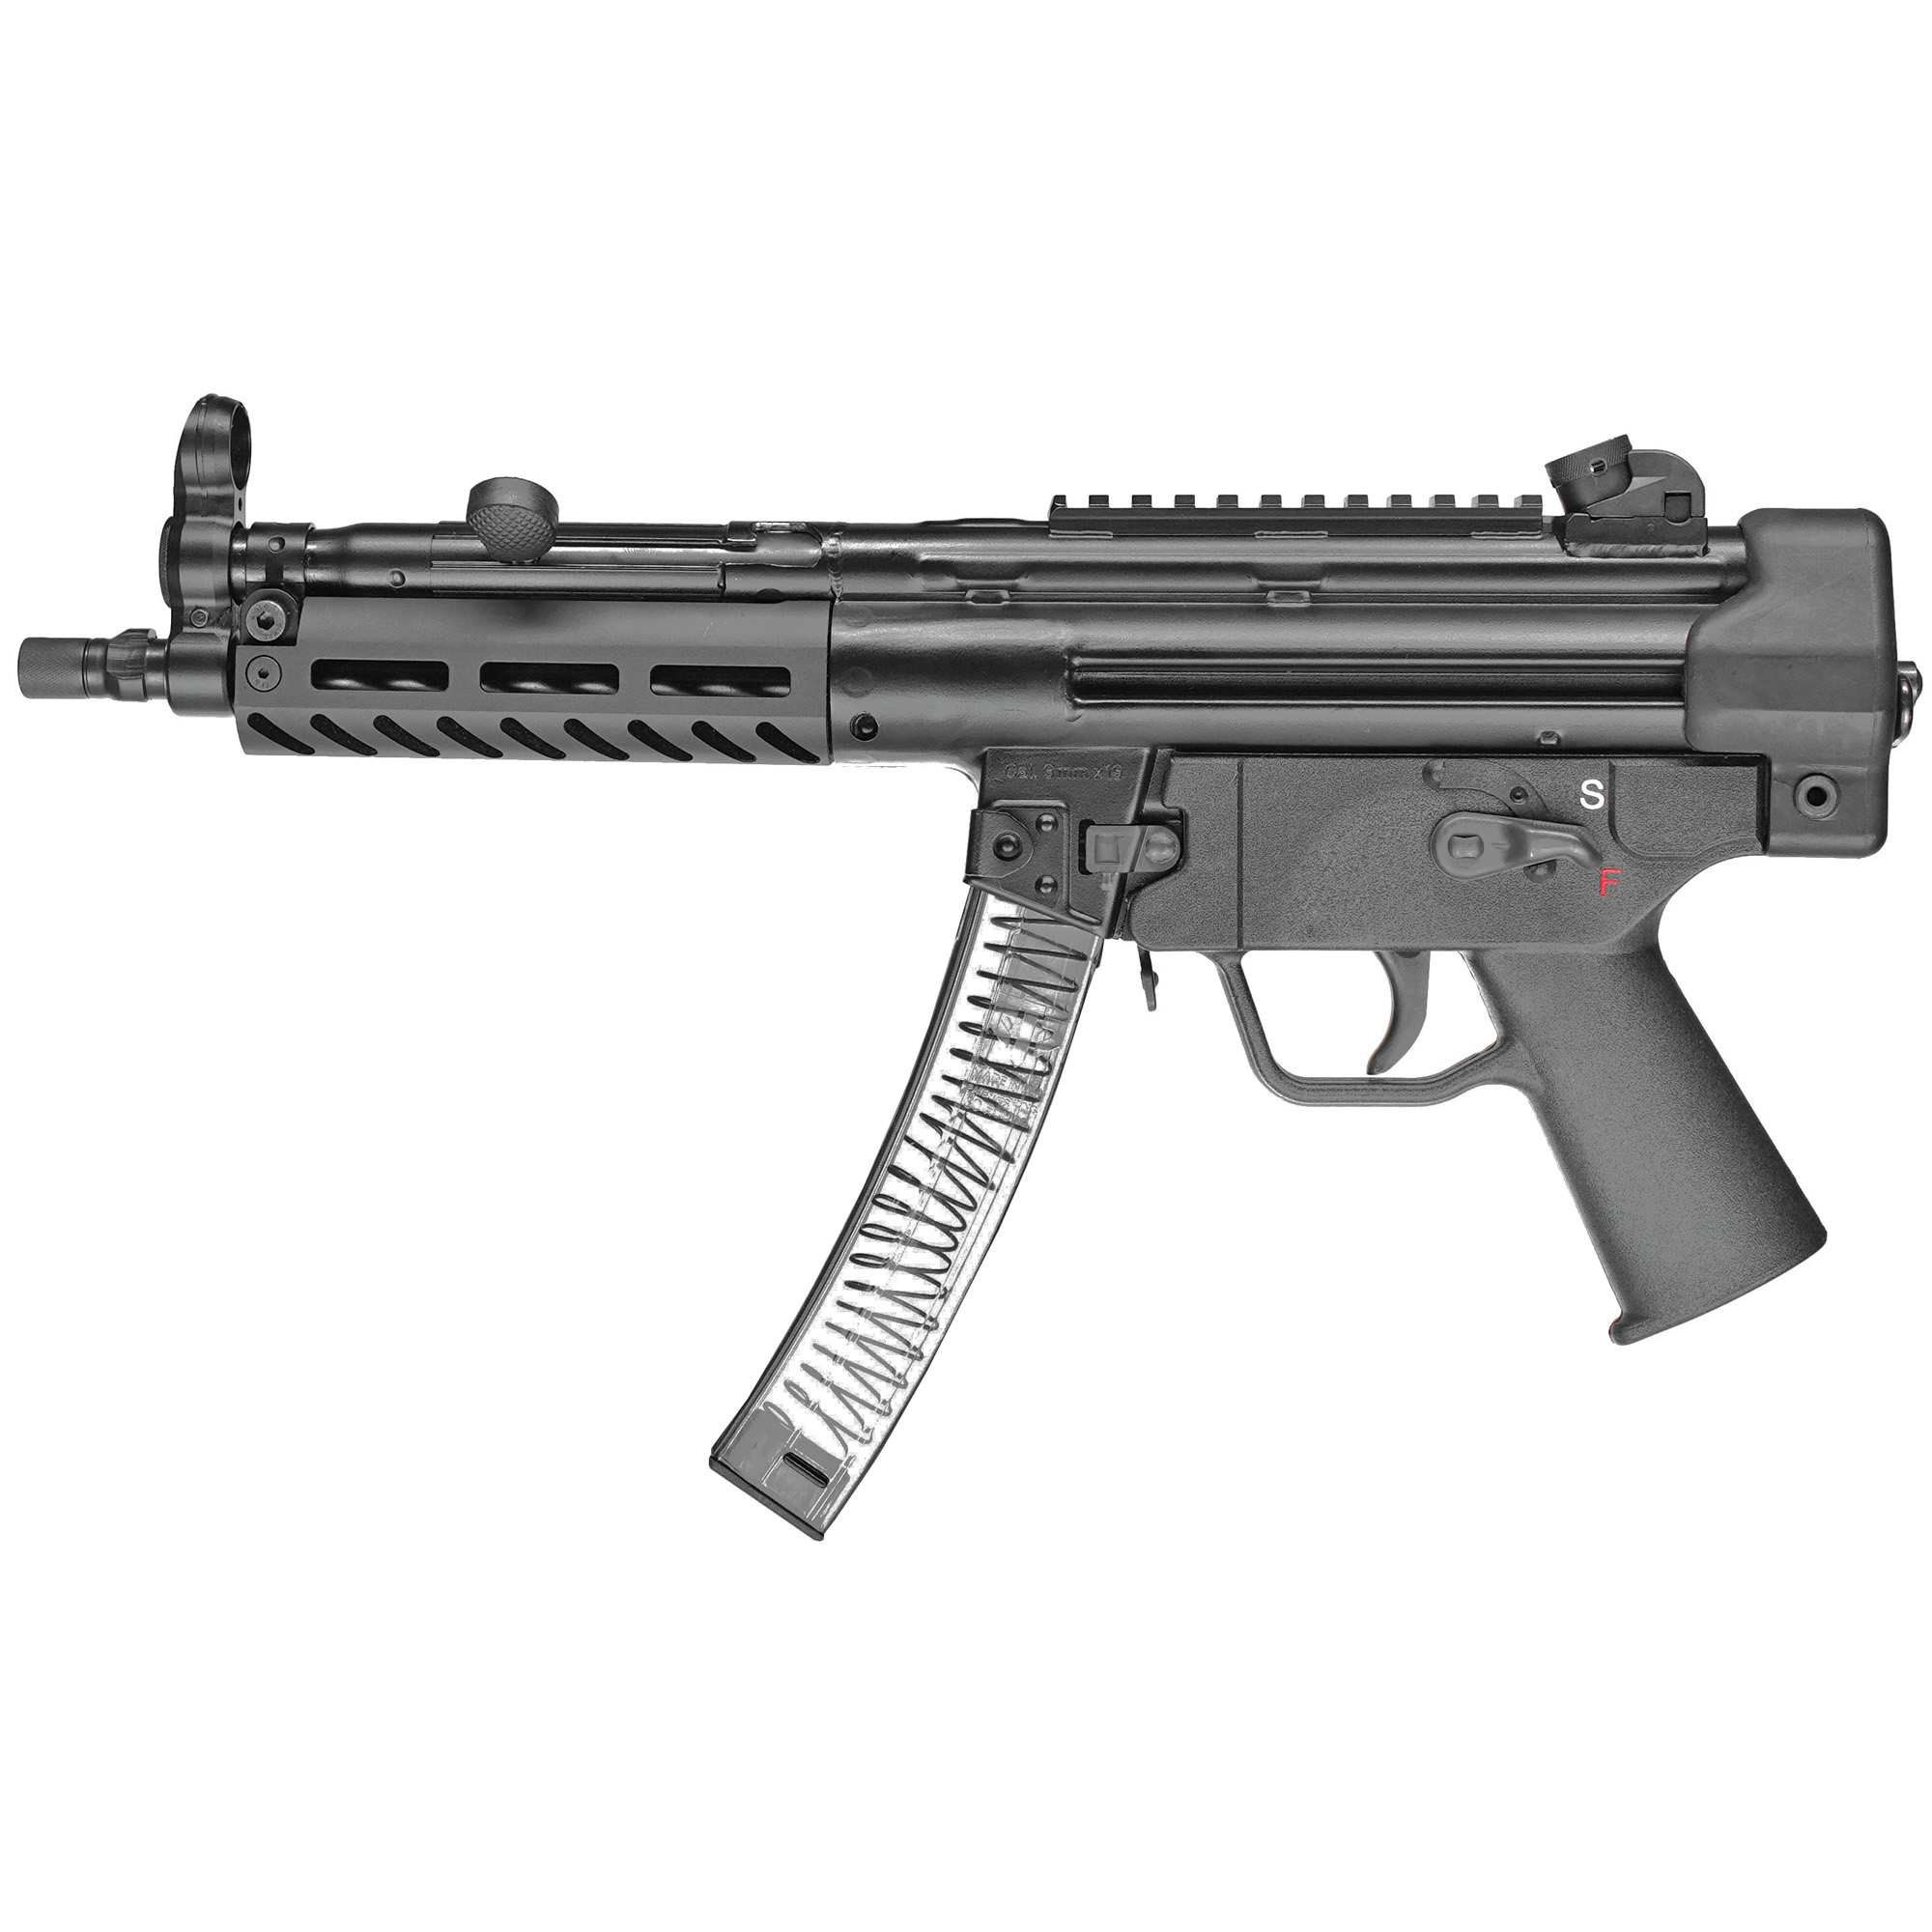 """The 9CT model features an M-LOK compatible aluminum handguard. The nitride treated 8.86"""" 3-lug barrel is threaded to 1/2 x 28. Both a push button and paddle magazine release are standard. The 4.5"""" precision-welded top rail enables use of your favorite optic or the traditional iron sights (included). The polymer end cap with swivel adapter provides a sling attachment point. The gun ships in a heavy duty range case with: single point bungee sling"""" two 30-round magazines and rear sight adjustment tool."""